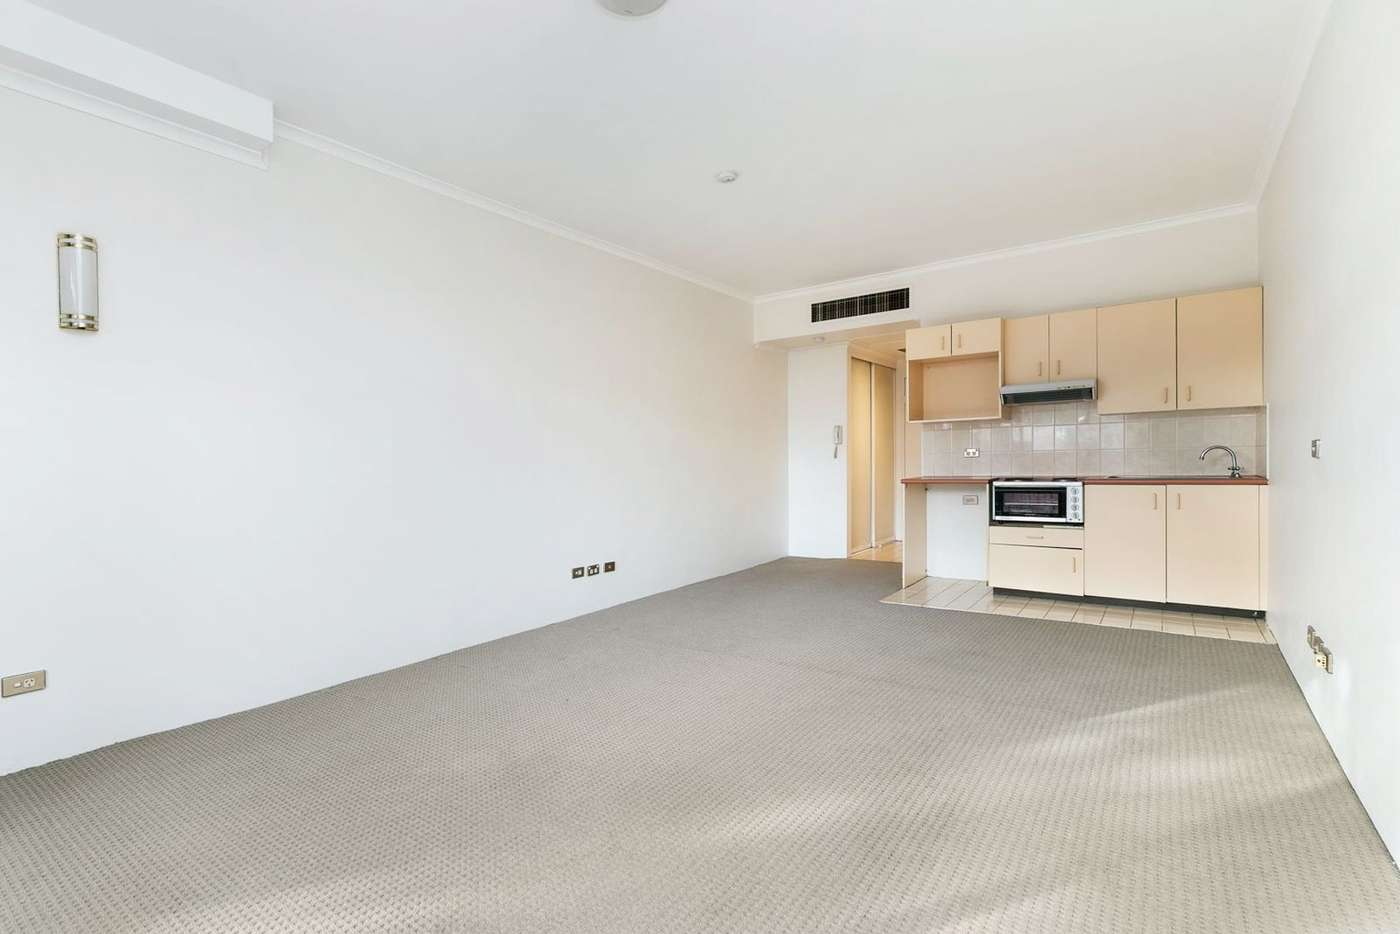 Main view of Homely studio listing, 77/75-79 Jersey Street, Hornsby NSW 2077